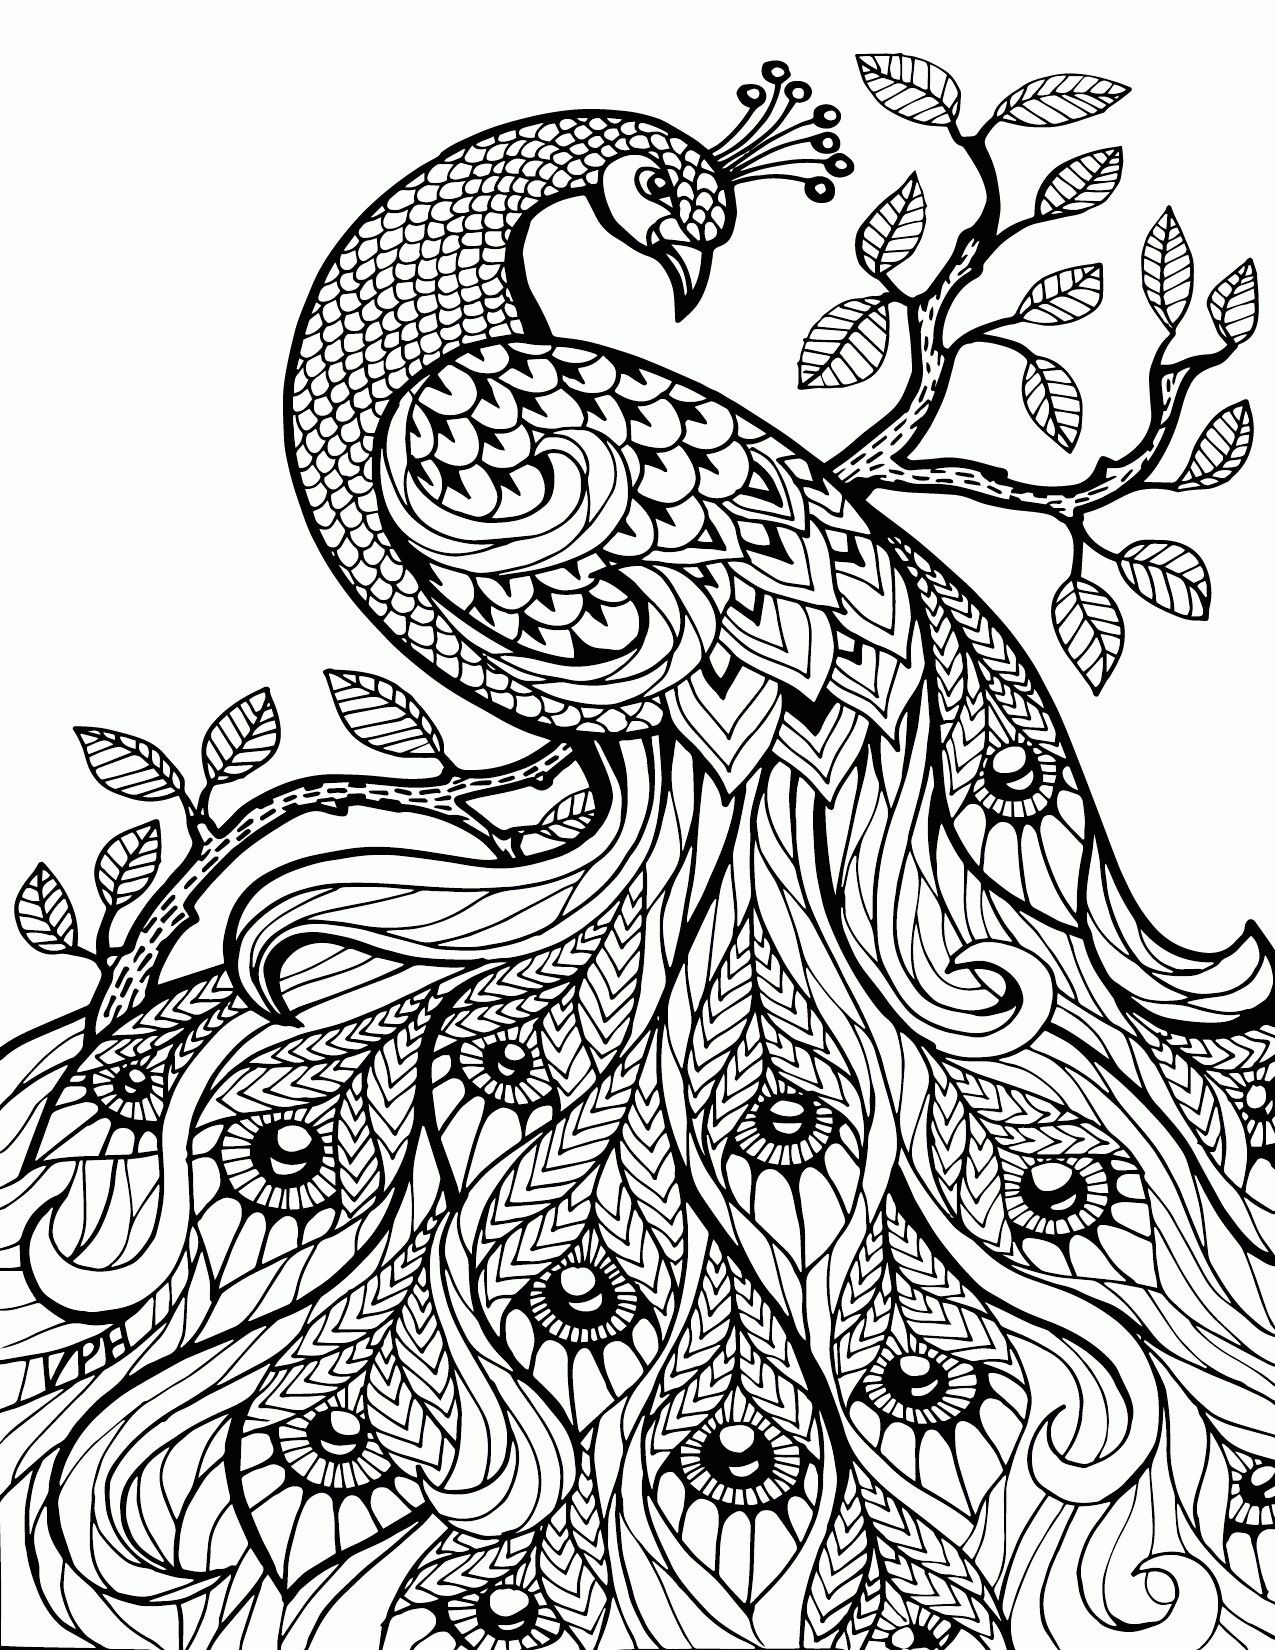 Pin by B_ Elle on Color Me Crazy | Pinterest | Adult coloring ...